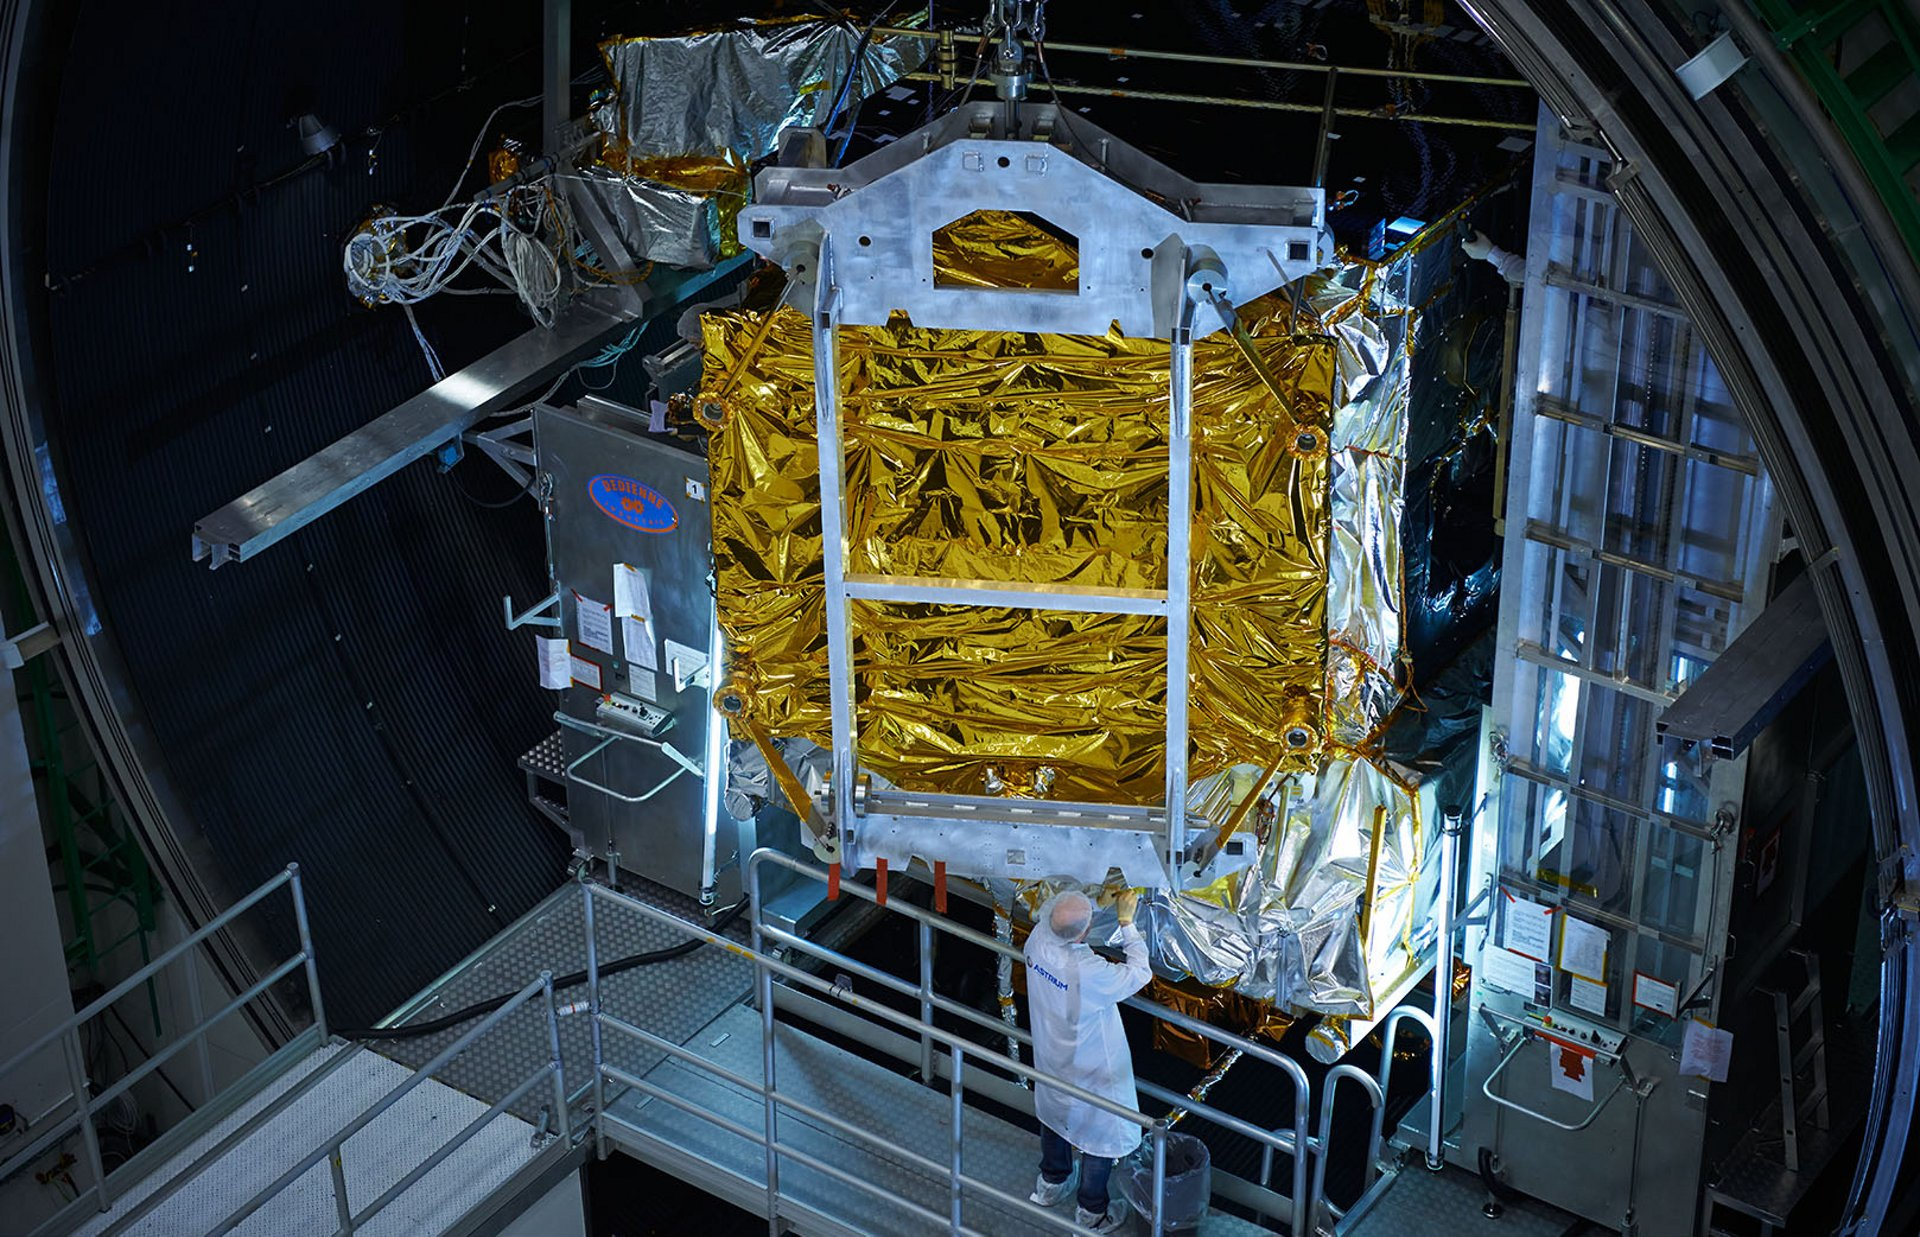 A satellite undergoes evaluations inside one of Airbus' European environmental test centres.